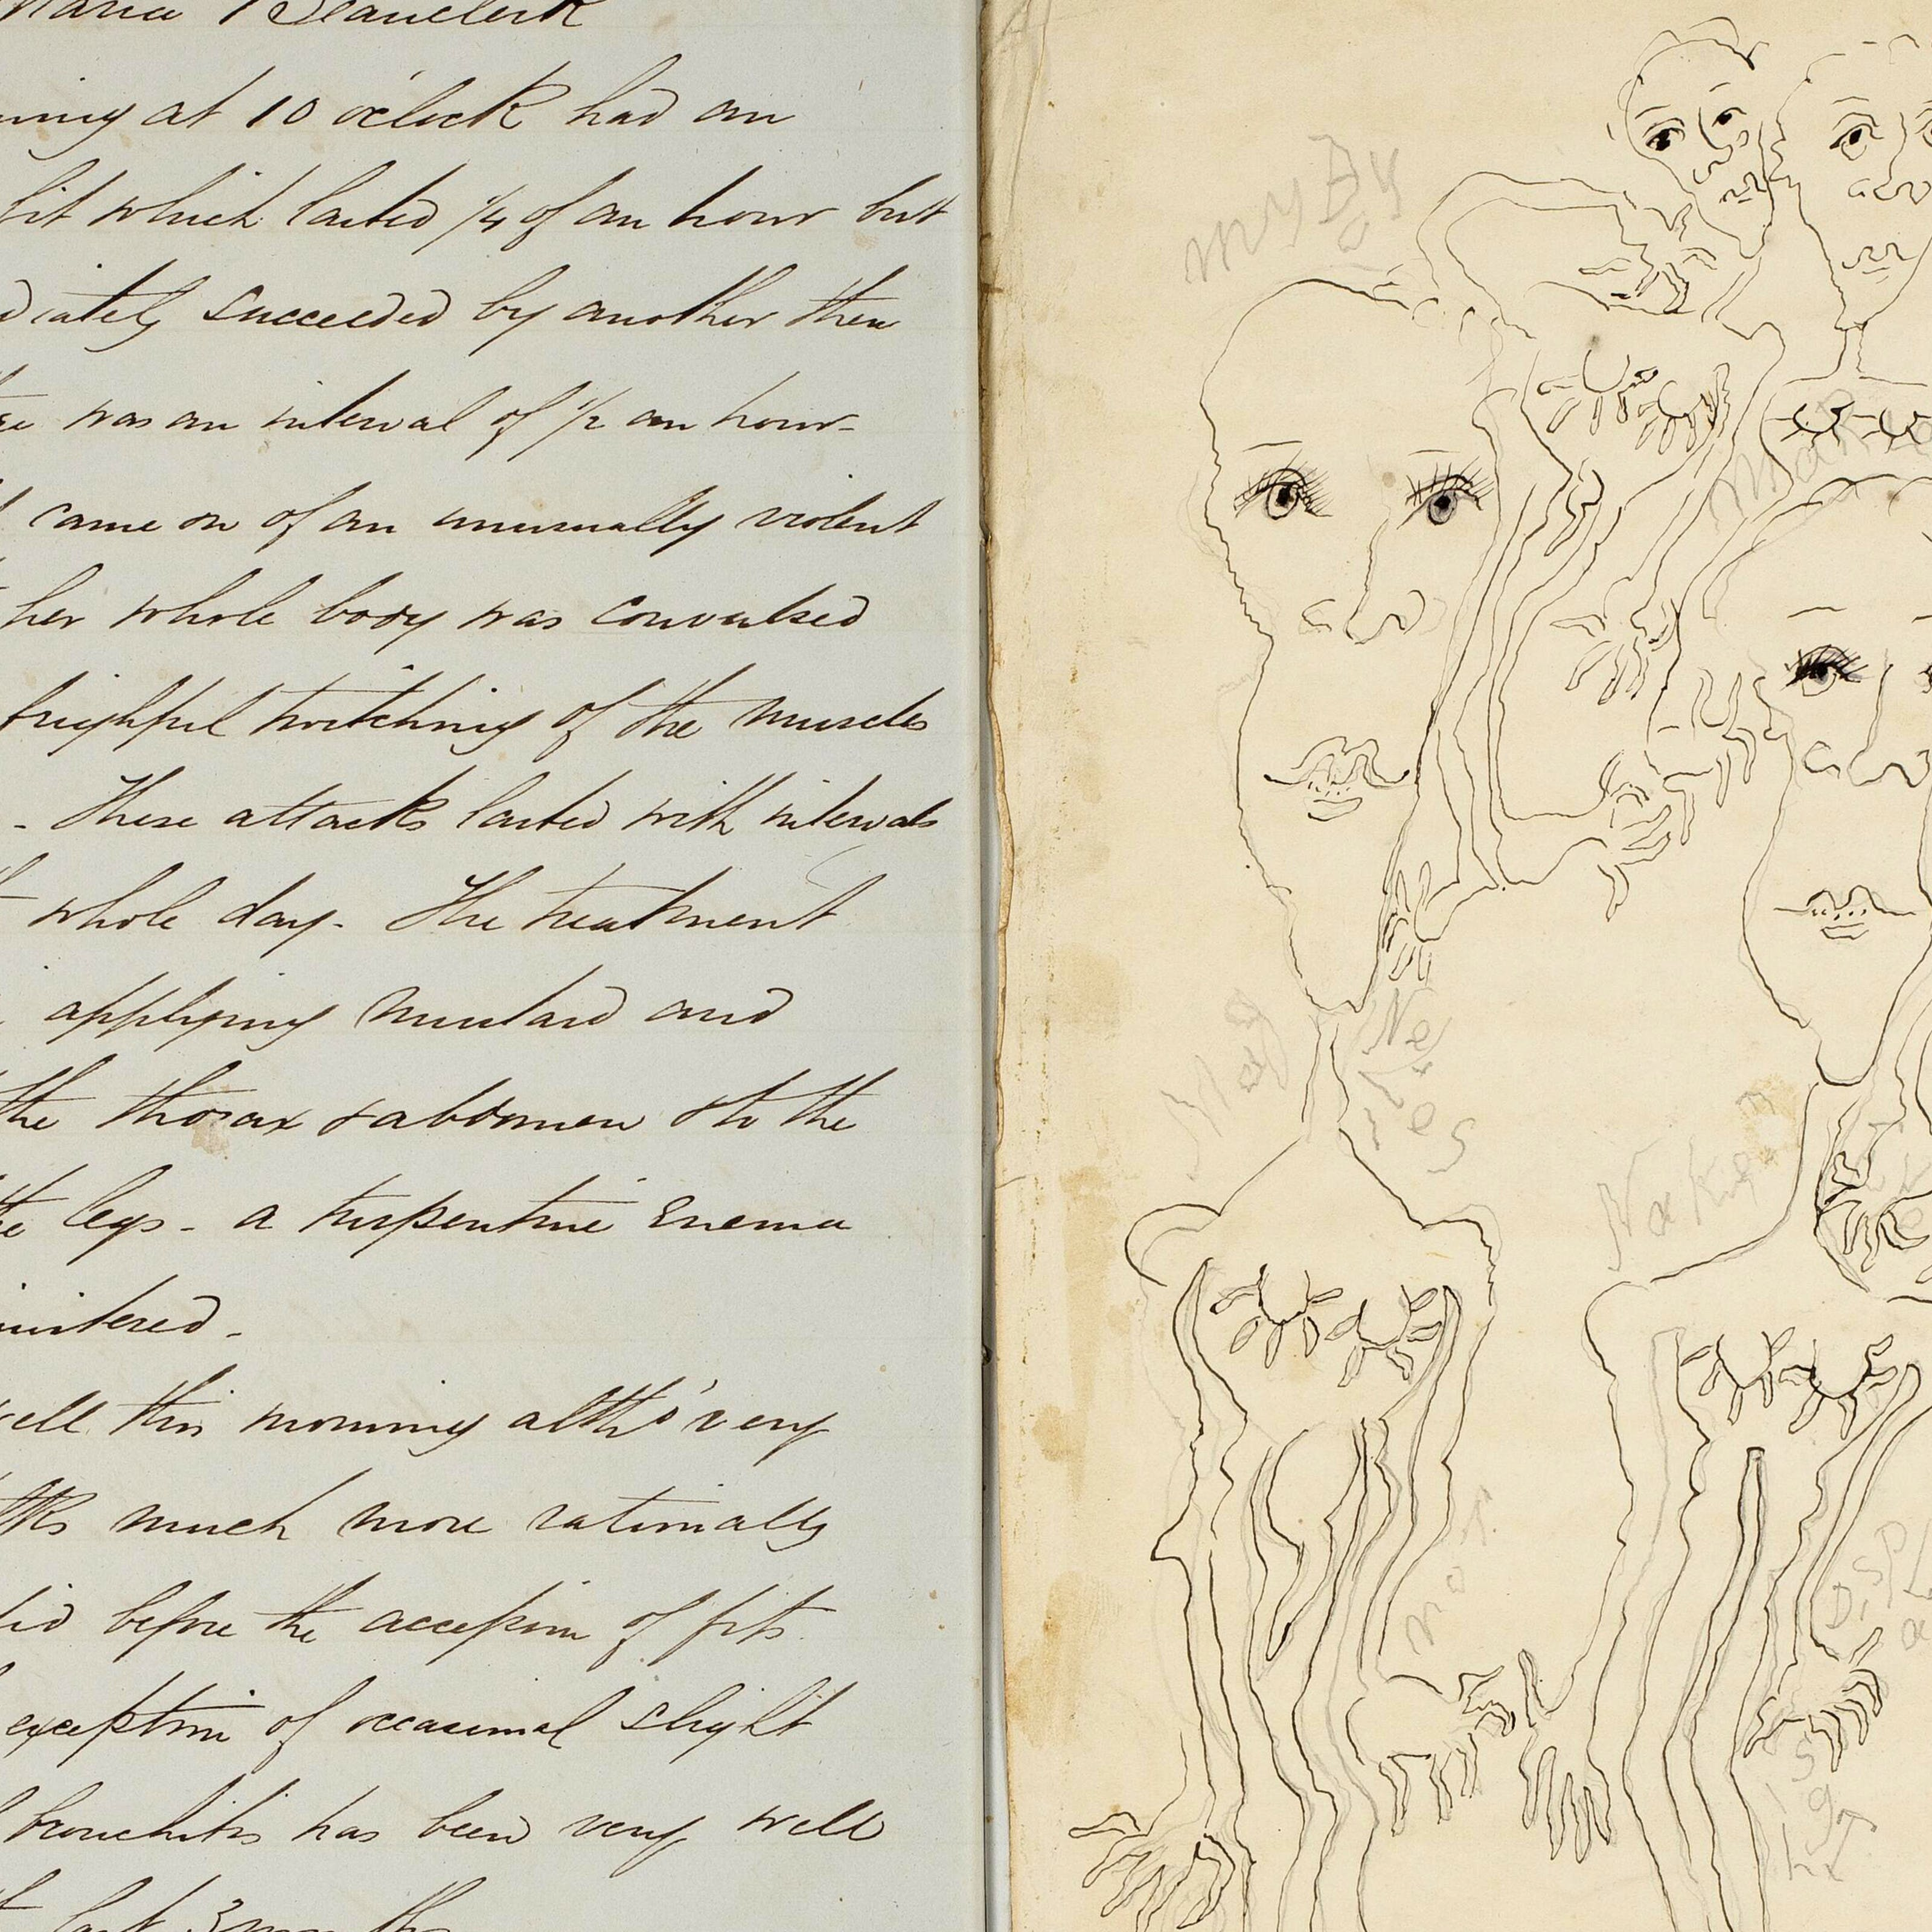 Patient records, with handwritten notes in black ink on the left, and a black and white drawing of several women on the right .